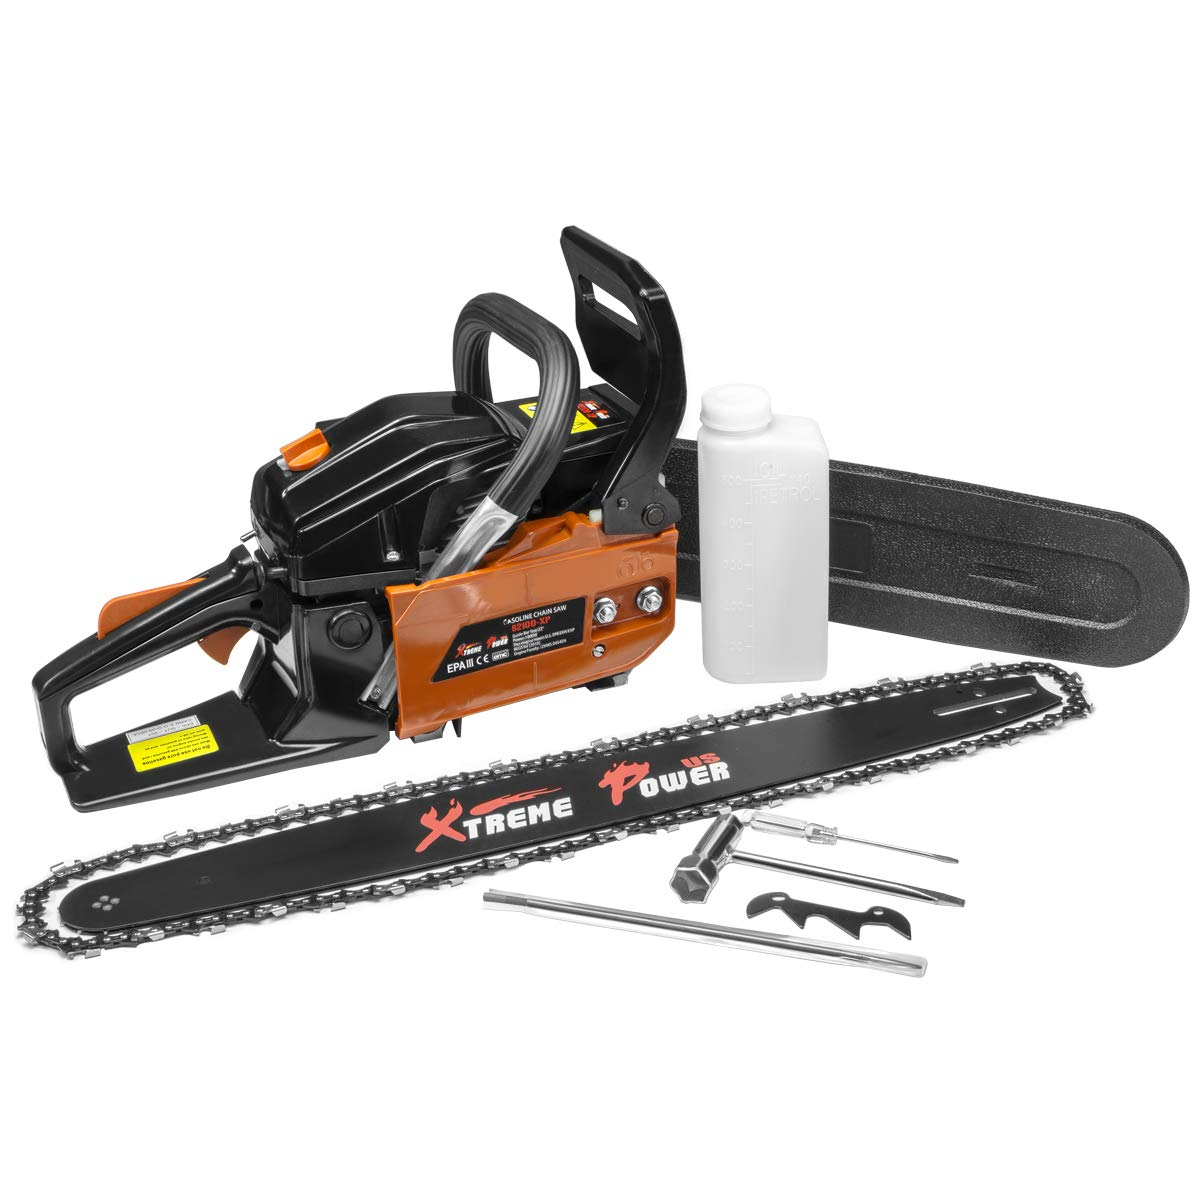 XtremepowerUS 82100-XP Chainsaws product image 7